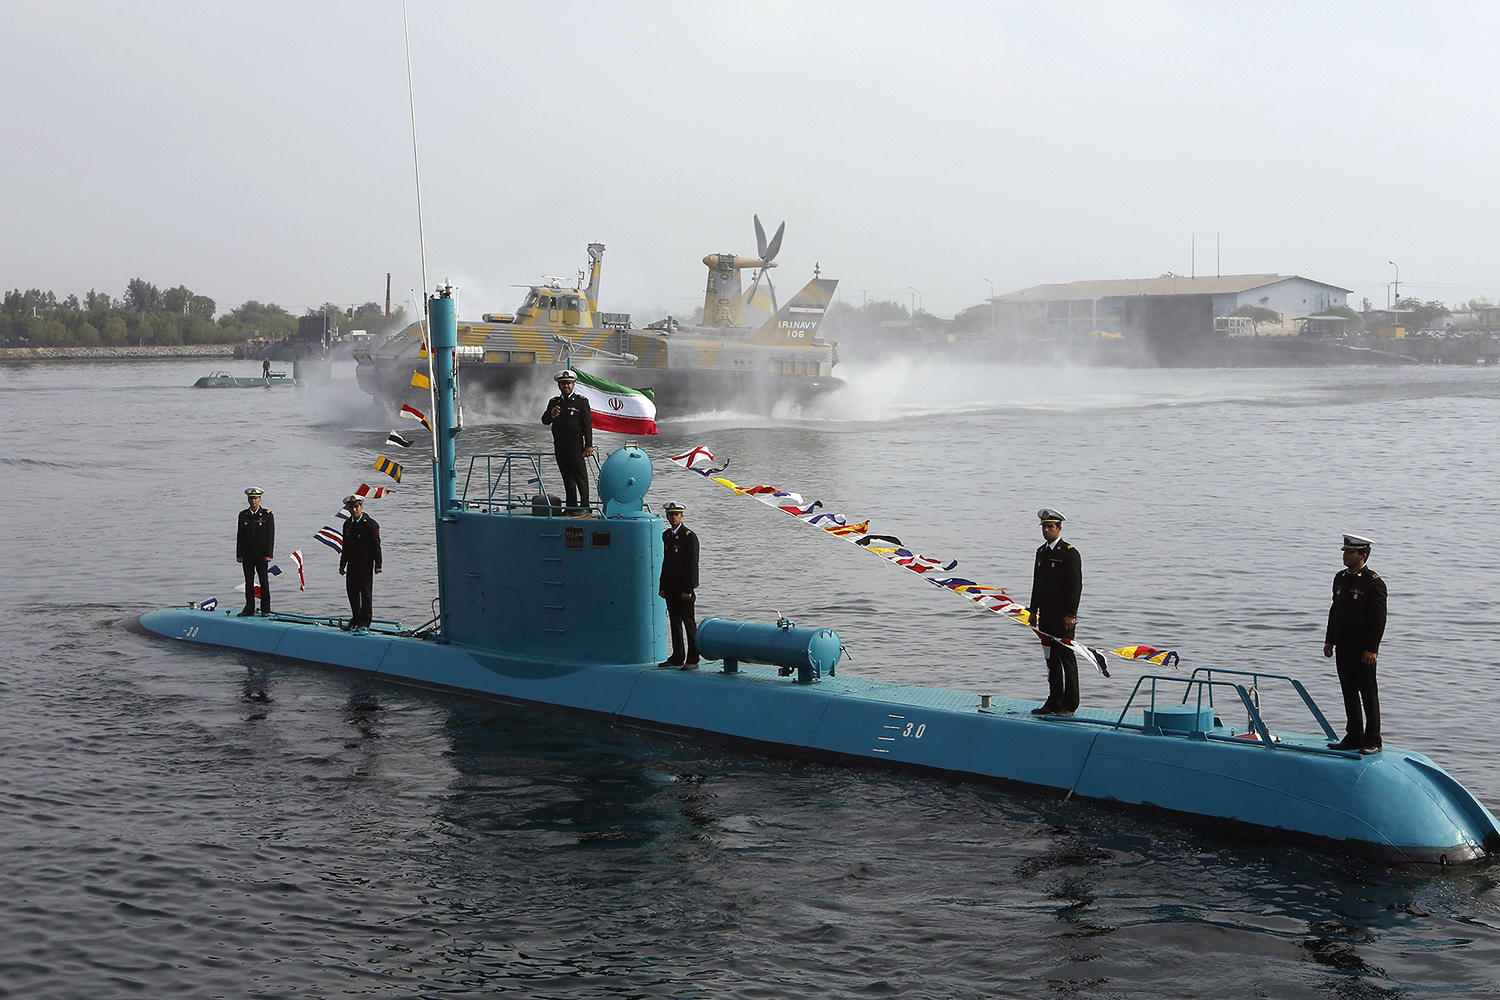 An Iranian Qadir light submarine and a hovercraft move in the Gulf waters in southern port of Bandar Abbas on November 28, 2012, after they were launched in an official ceremony. Iran boosted its naval power in Gulf waters after a new missile launching vessel and two light submarines joined its Navy fleet. AFP PHOTO/MEHR NEWS/AHMAD JAFARI